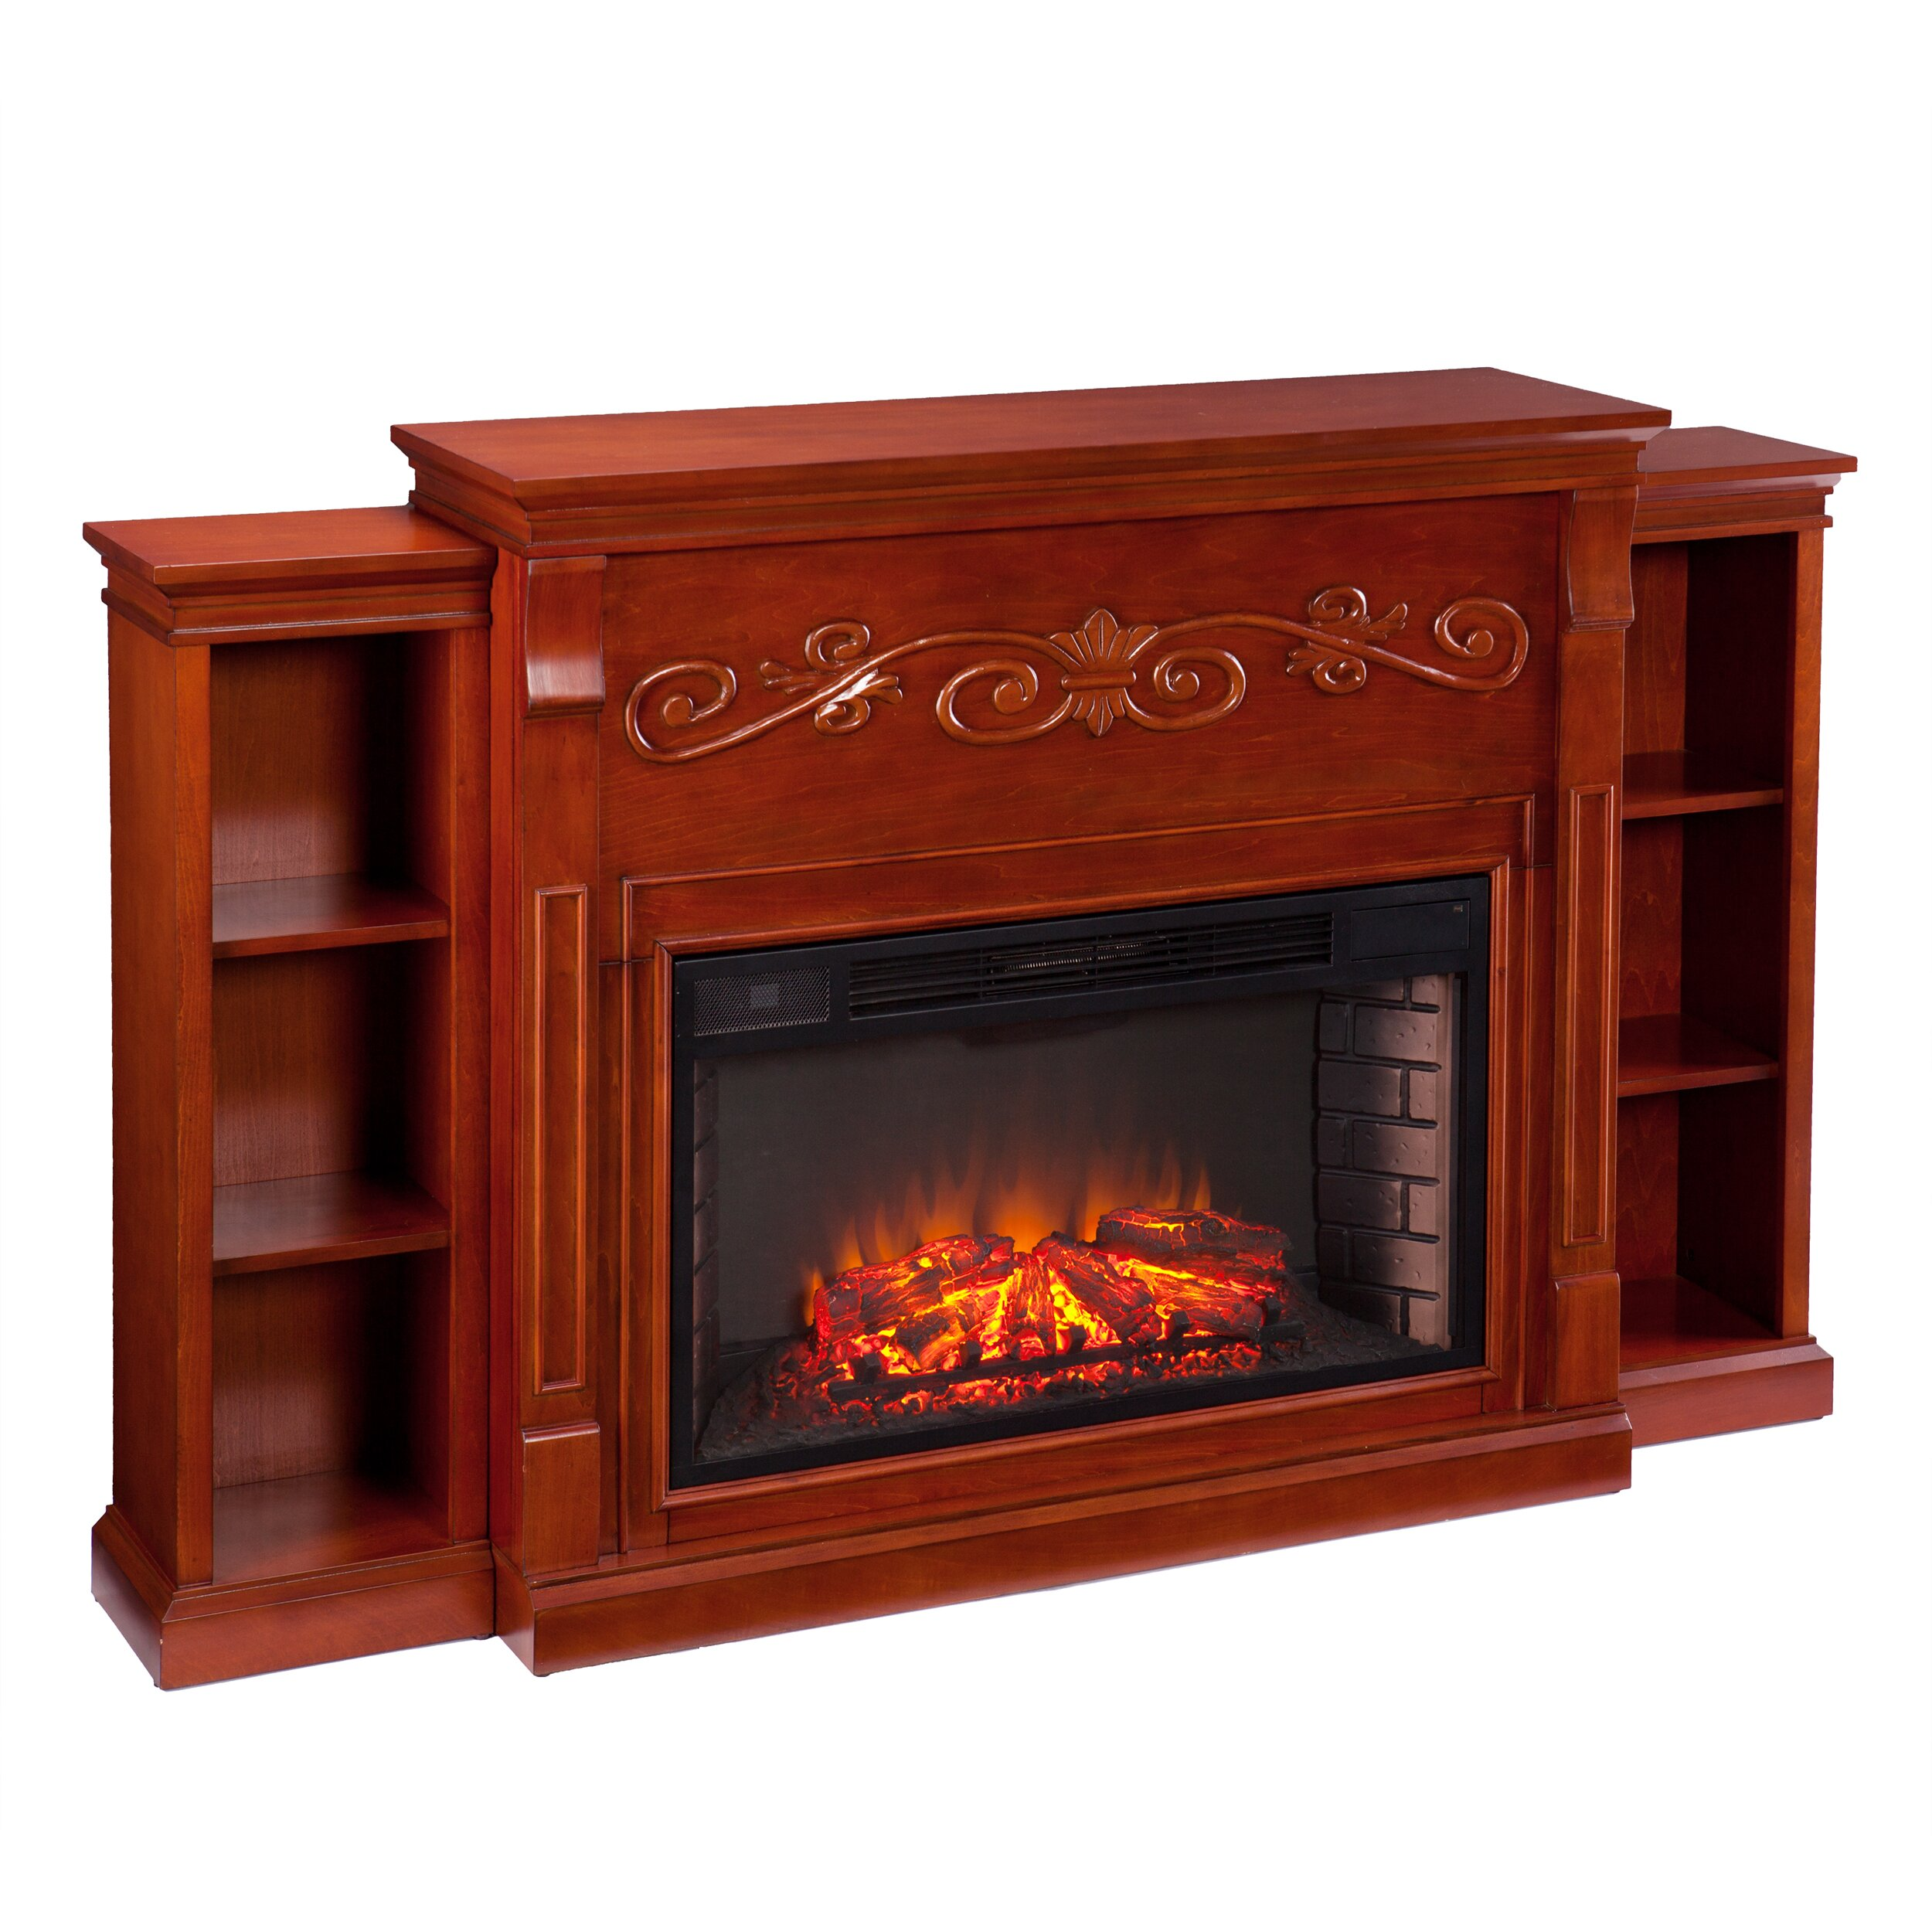 Wildon Home Langley Bookcase Electric Fireplace Reviews Wayfair